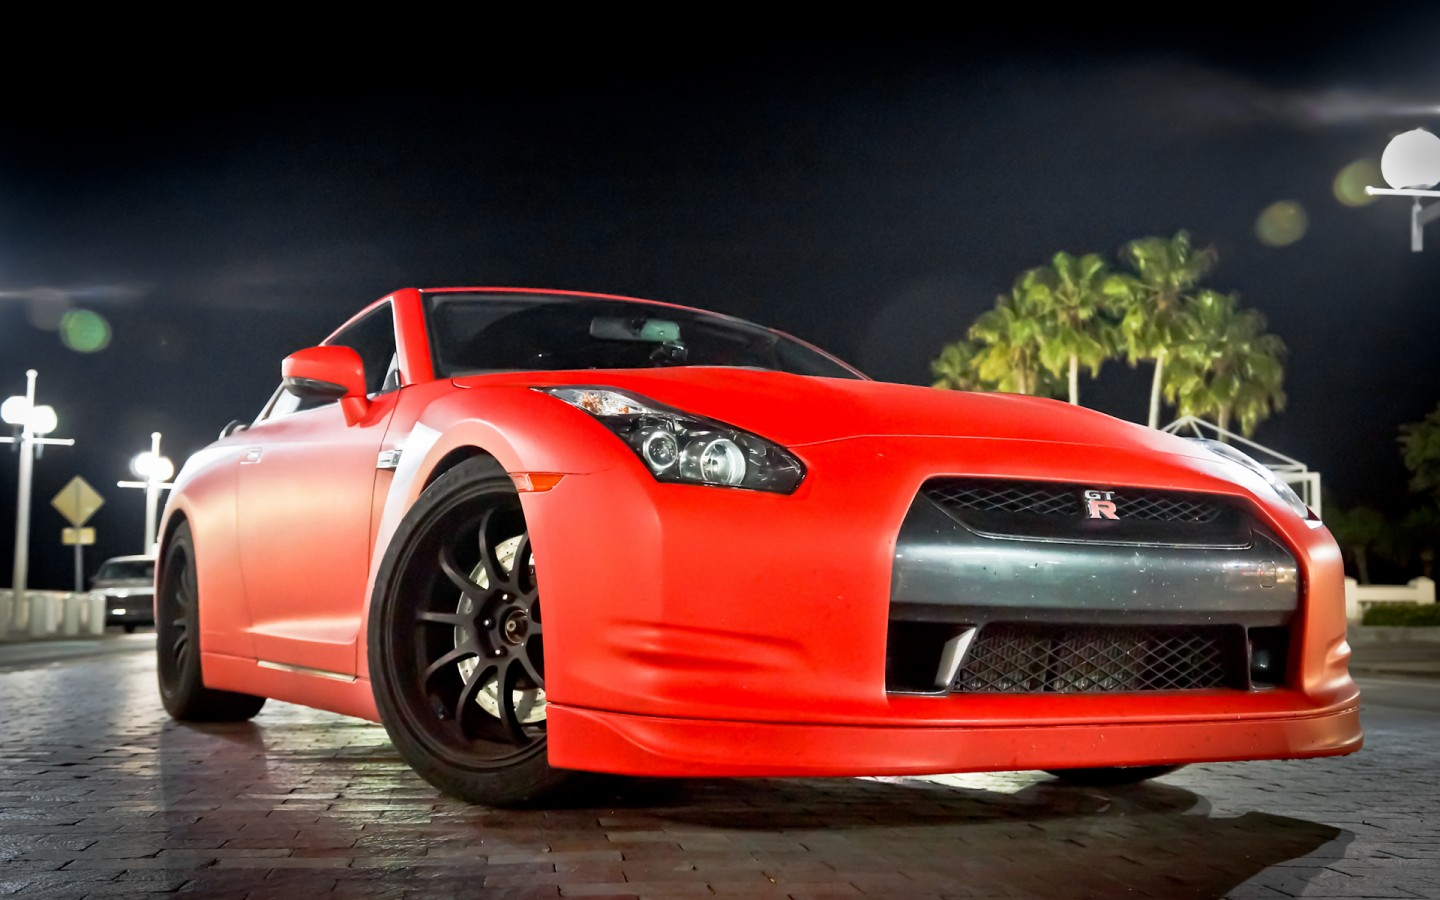 Red And Black Car Wallpapers: Nissan GTR Matte Red Wallpaper